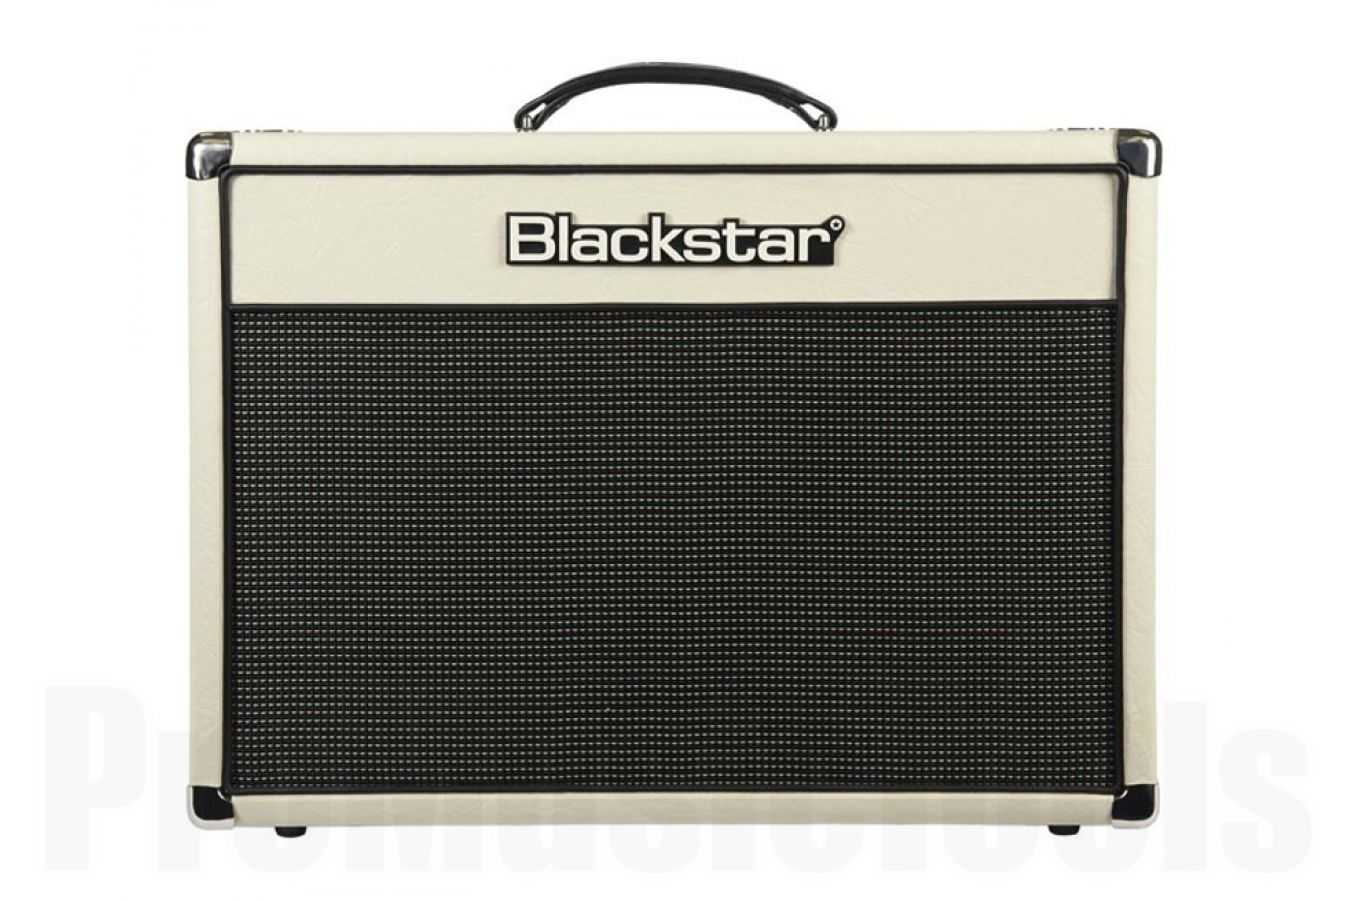 Blackstar HT-5TH 2x10 Combo - Anniversary Limited Edition - b-stock